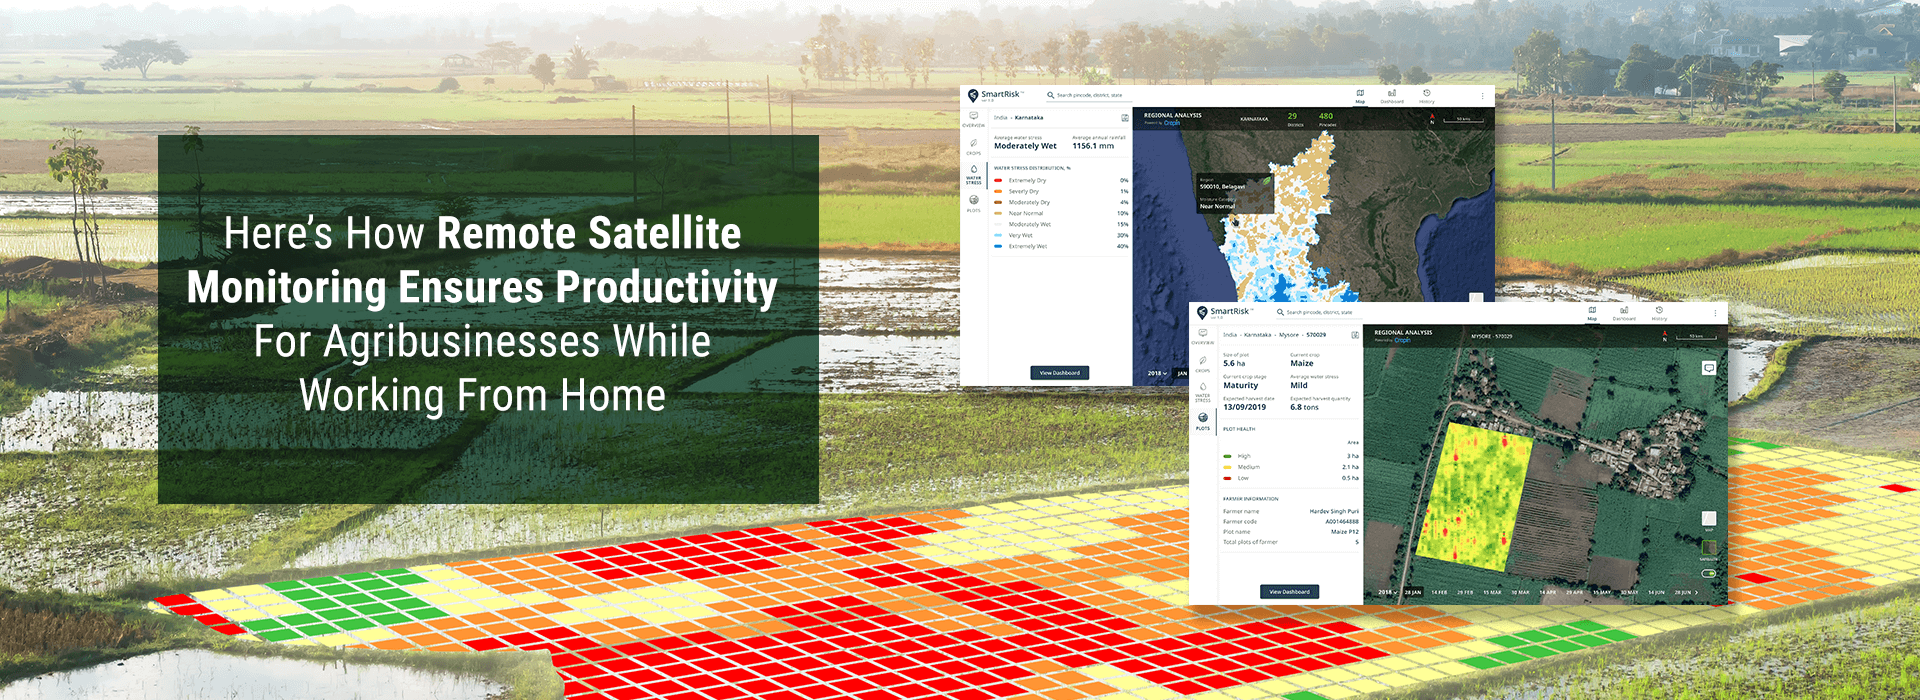 Banner Image: Here's How Remote Satellite Monitoring Ensures Productivity For Agribusinesses While Working From Home